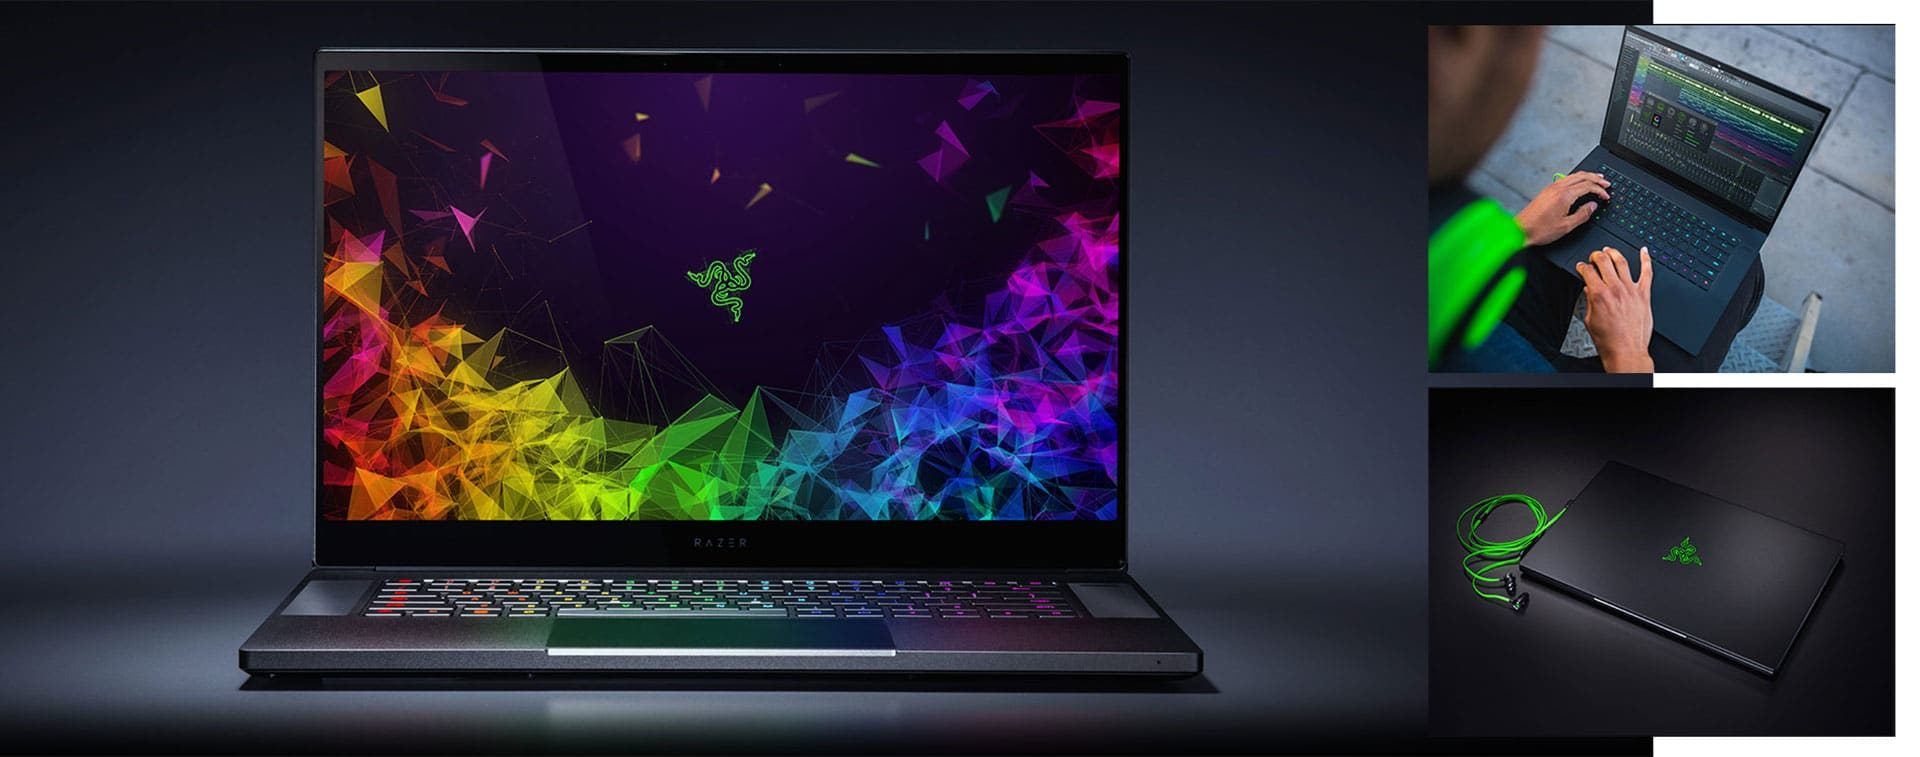 Razer Blade 15 - the best thin-and-light gaming laptop